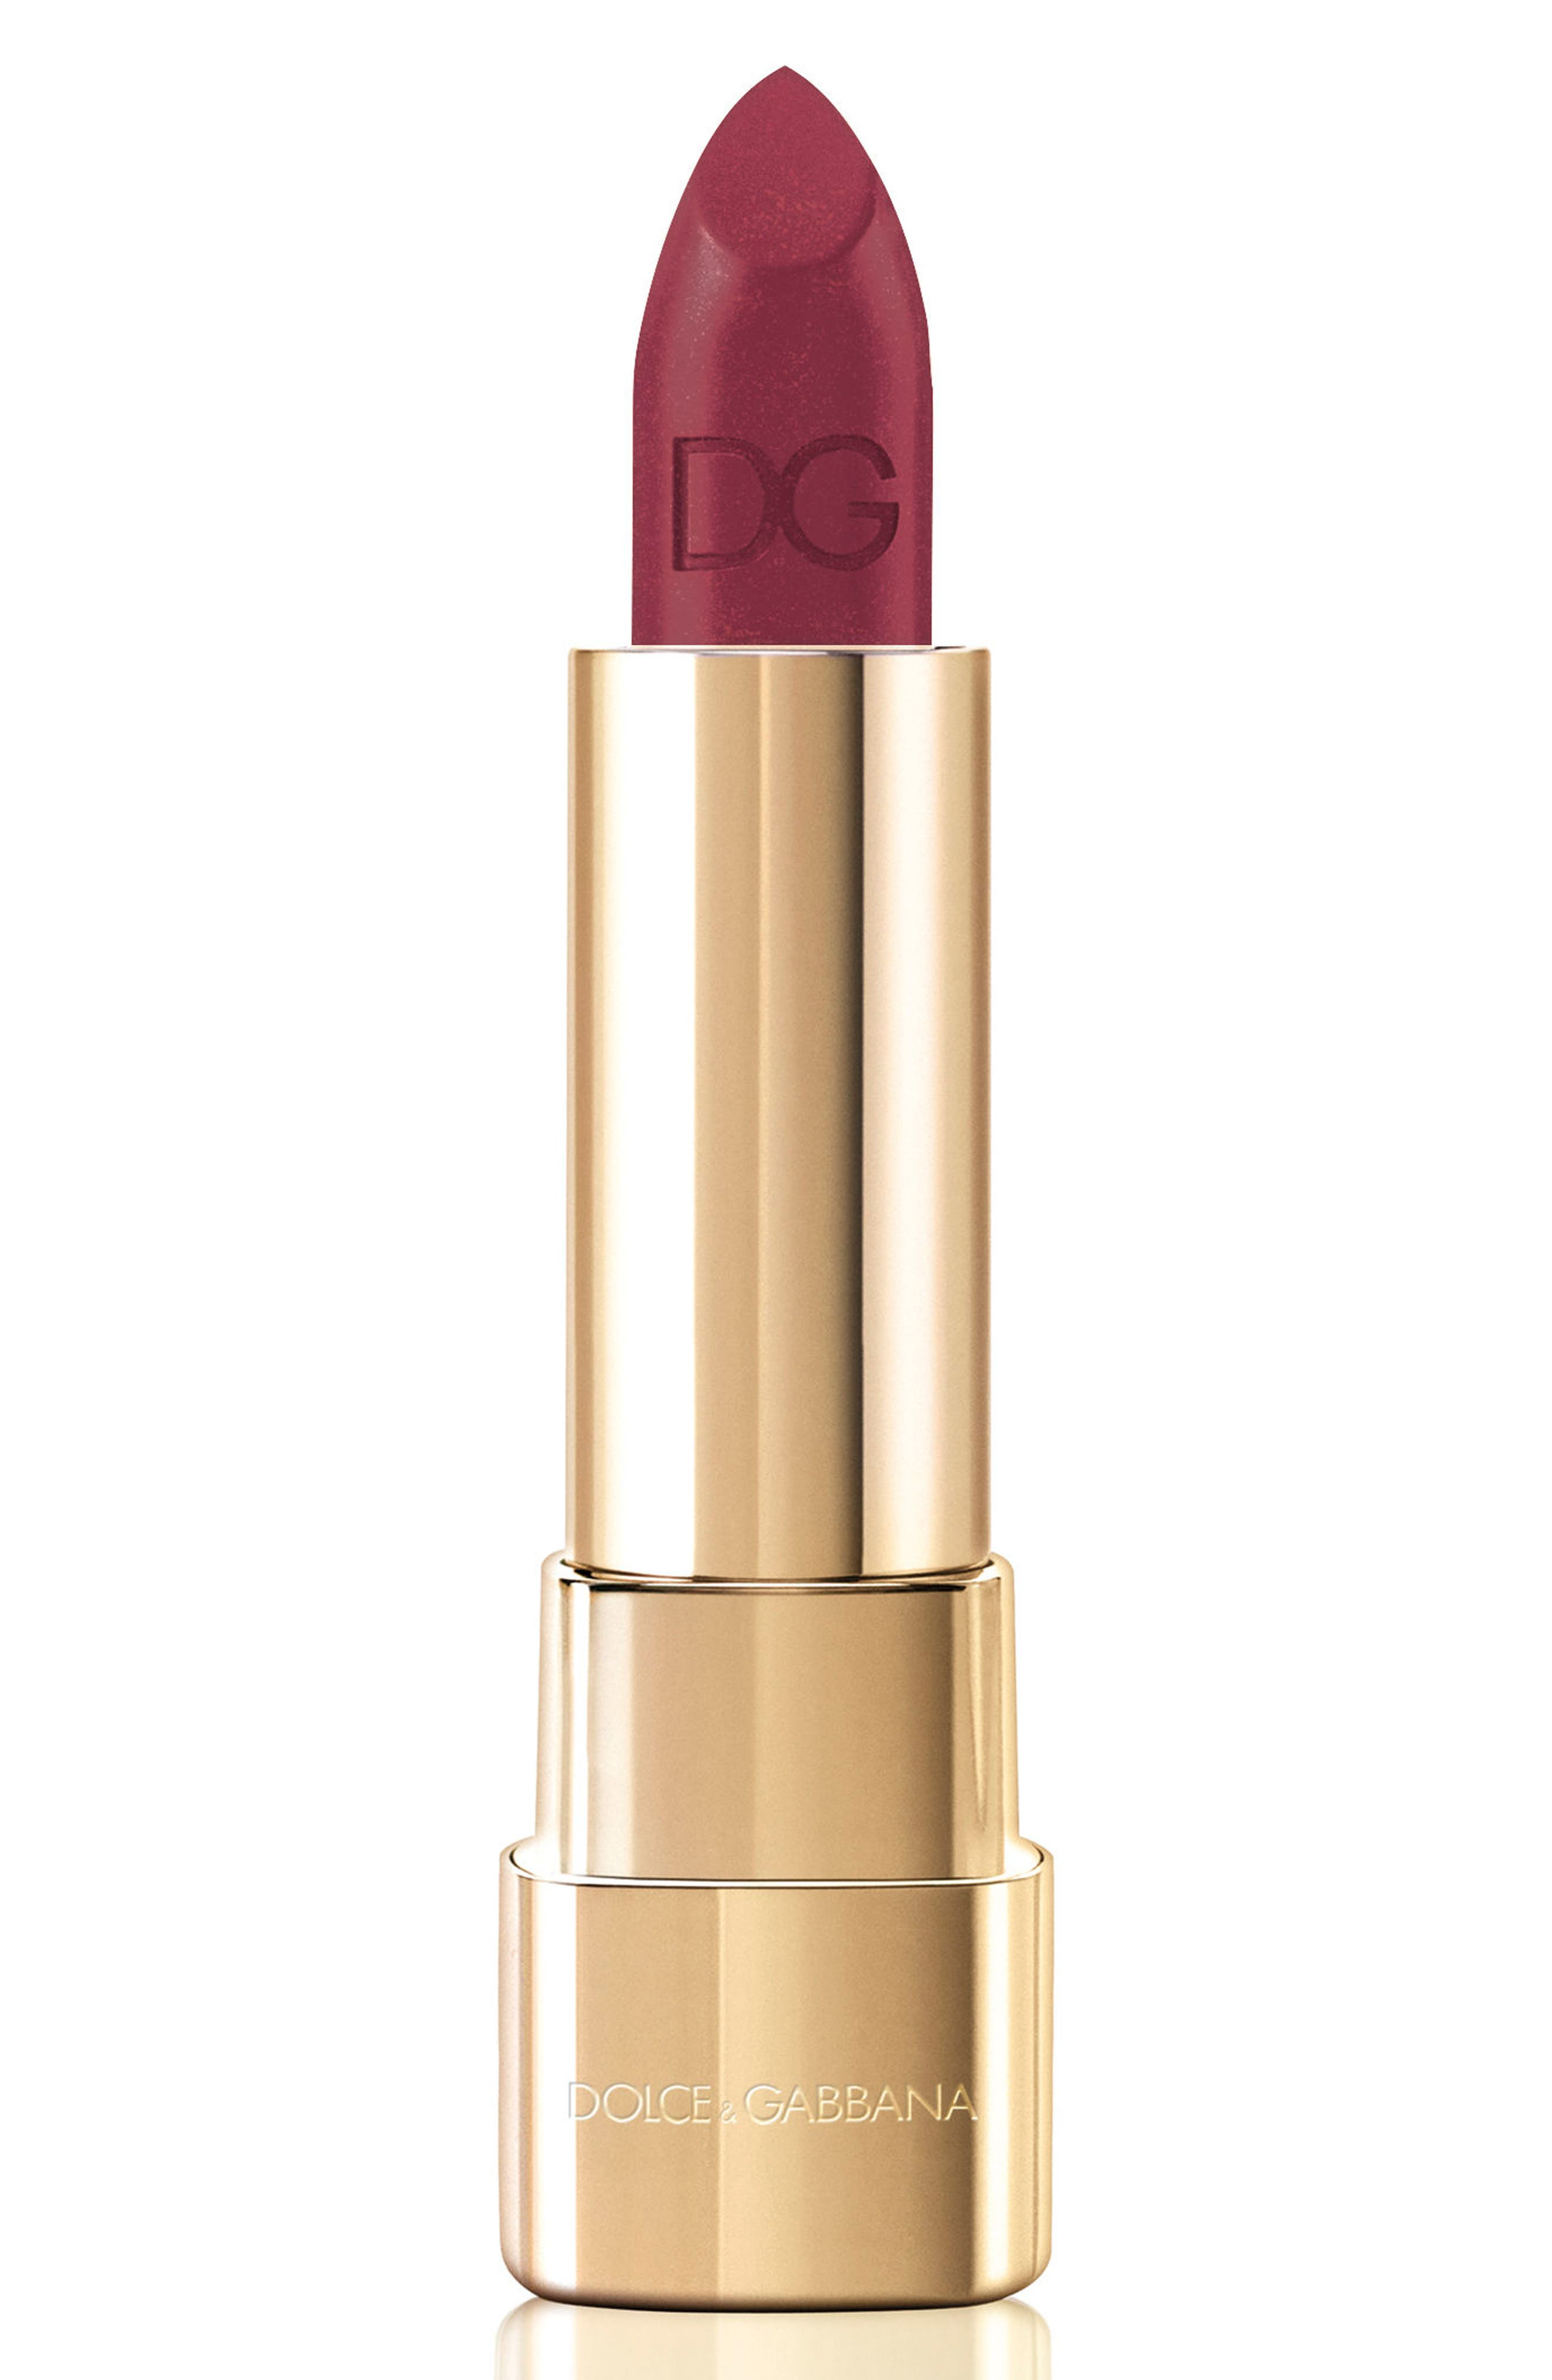 Dolce&Gabbana Beauty Shine Lipstick